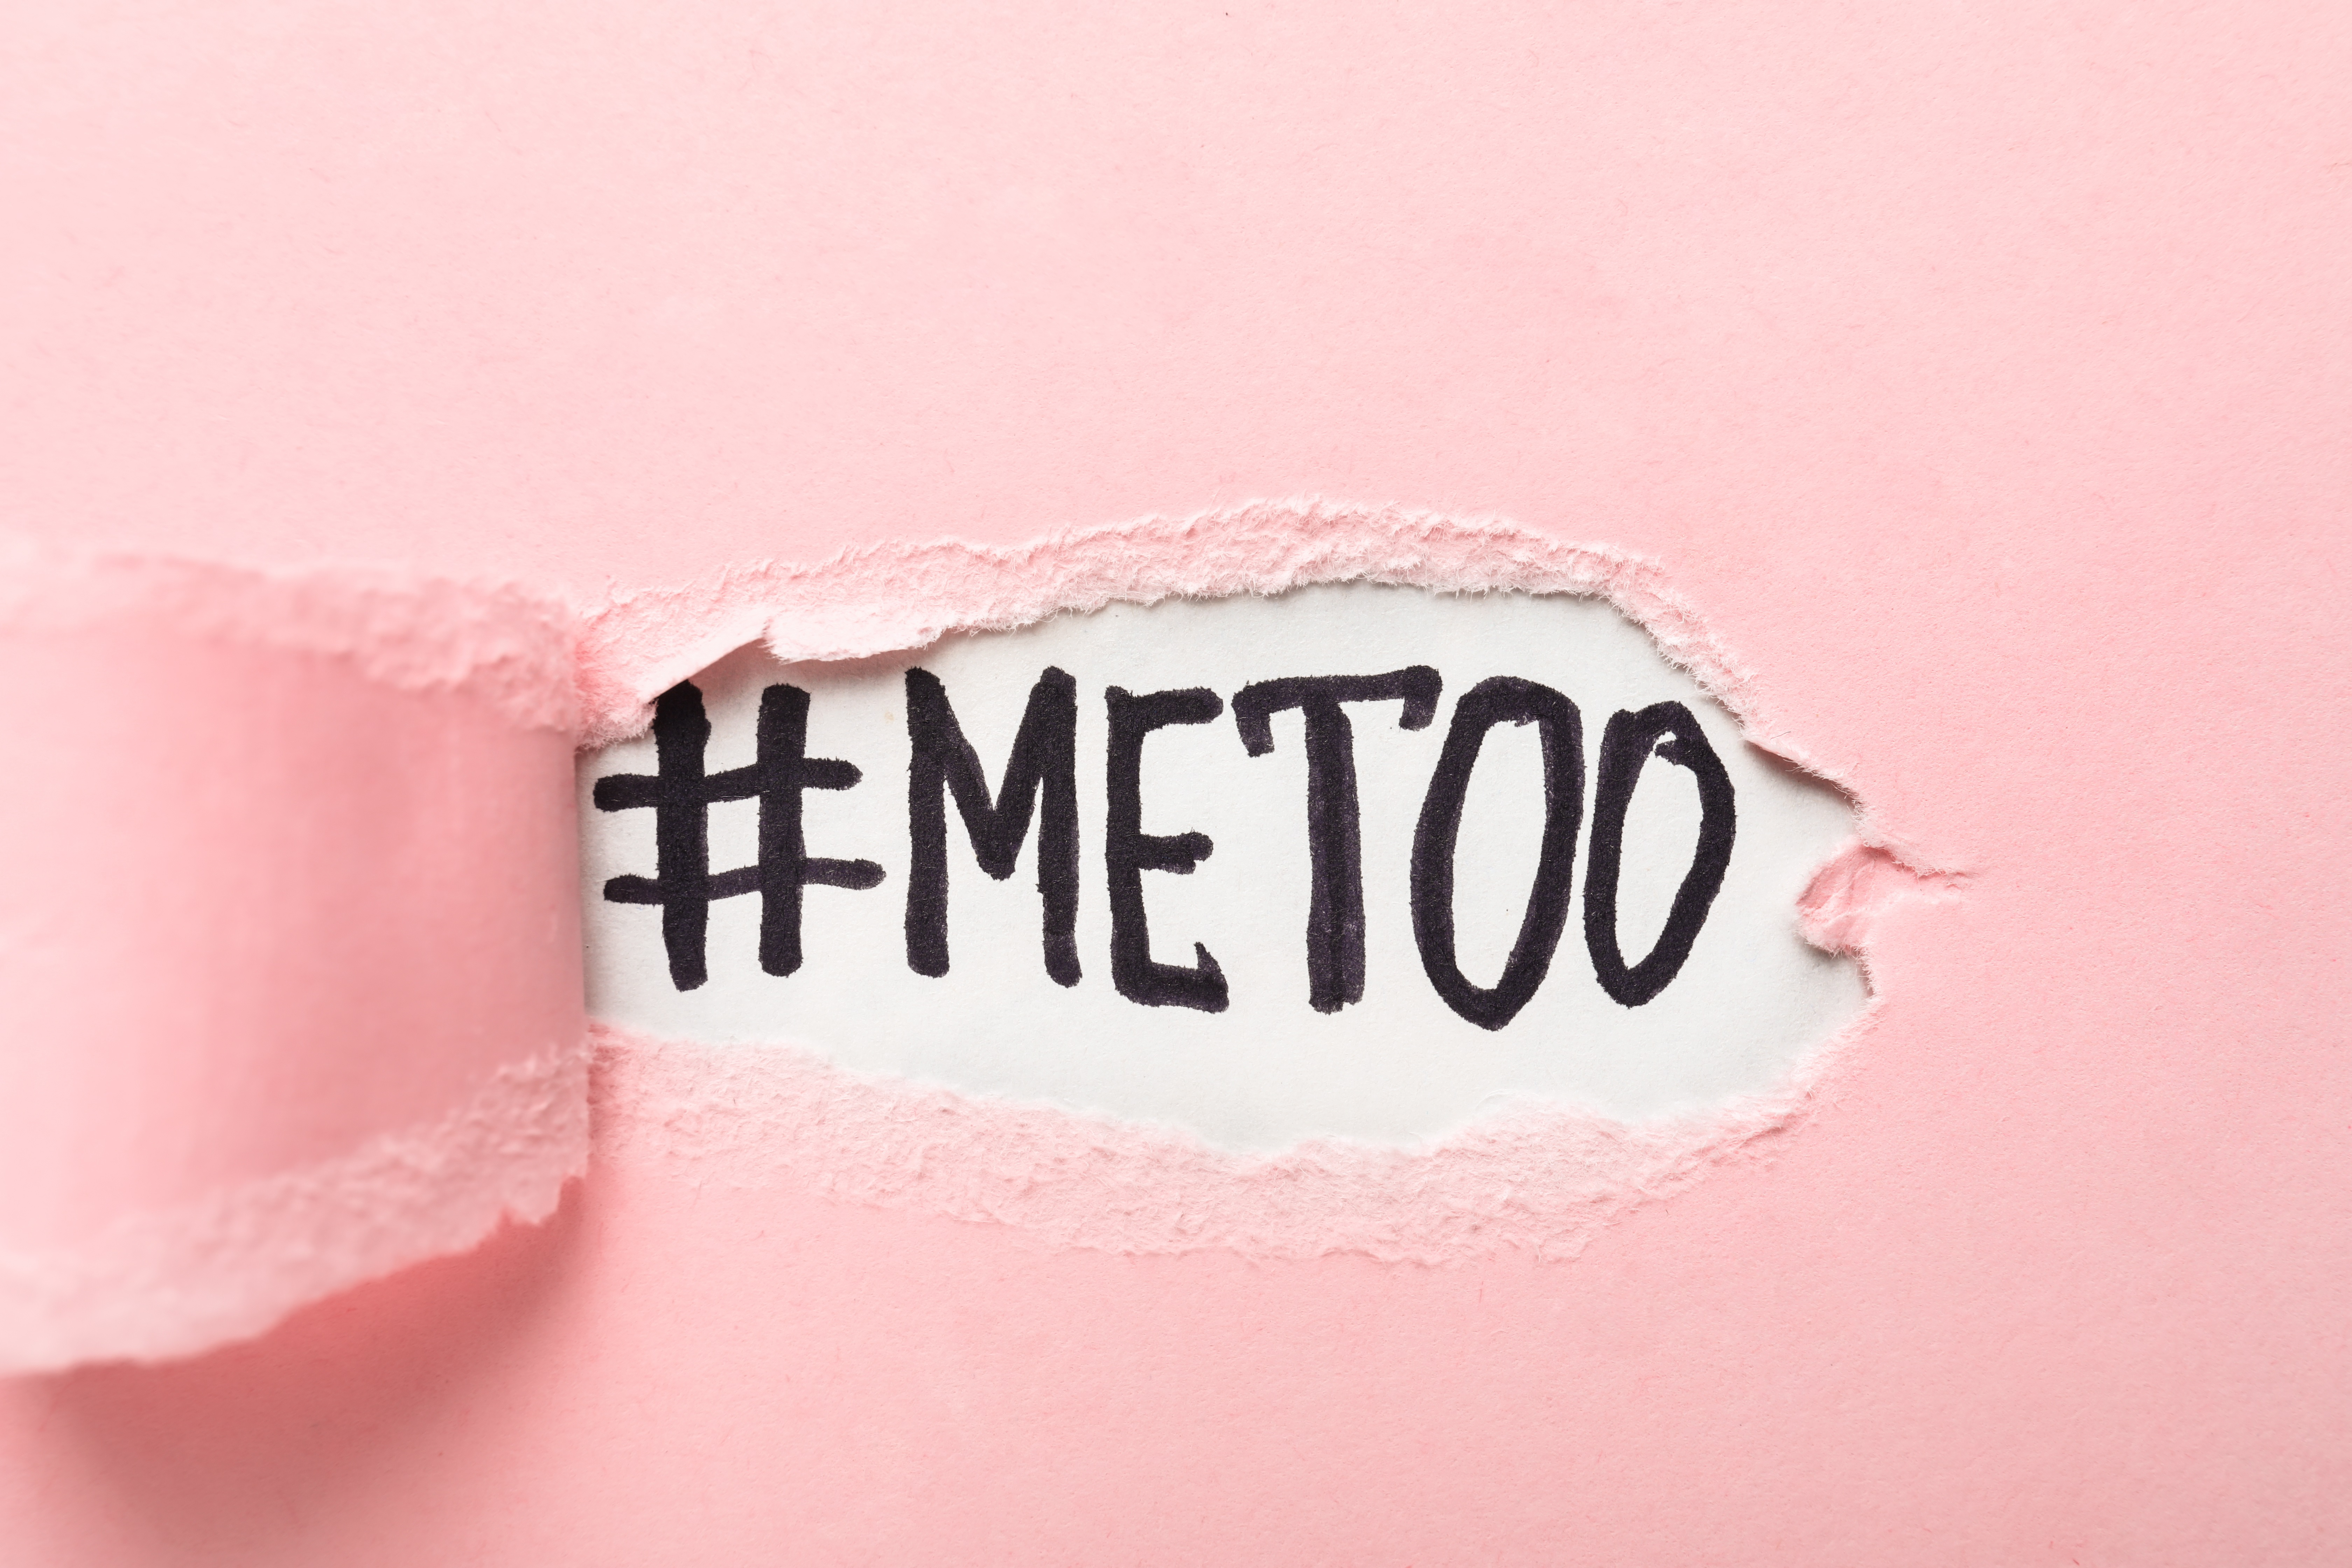 A pink page ripped open reveals #METOO in black ink on a white page.